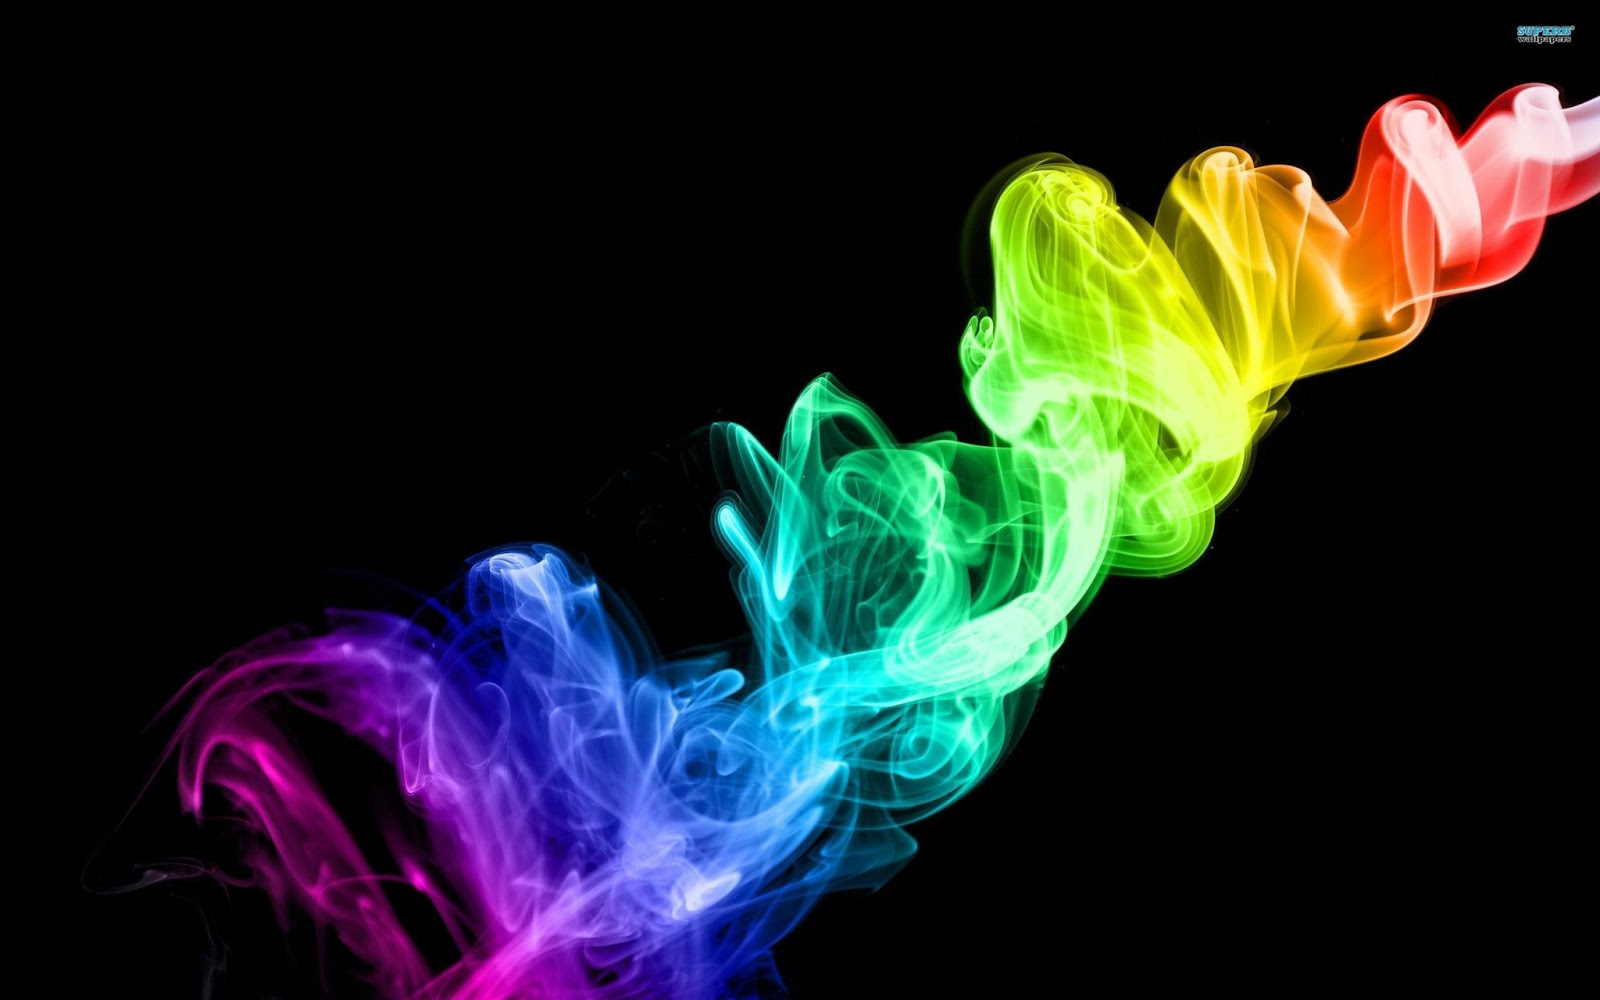 Hd Colorful Backgrounds: Colorful Smoke HD Wallpapers